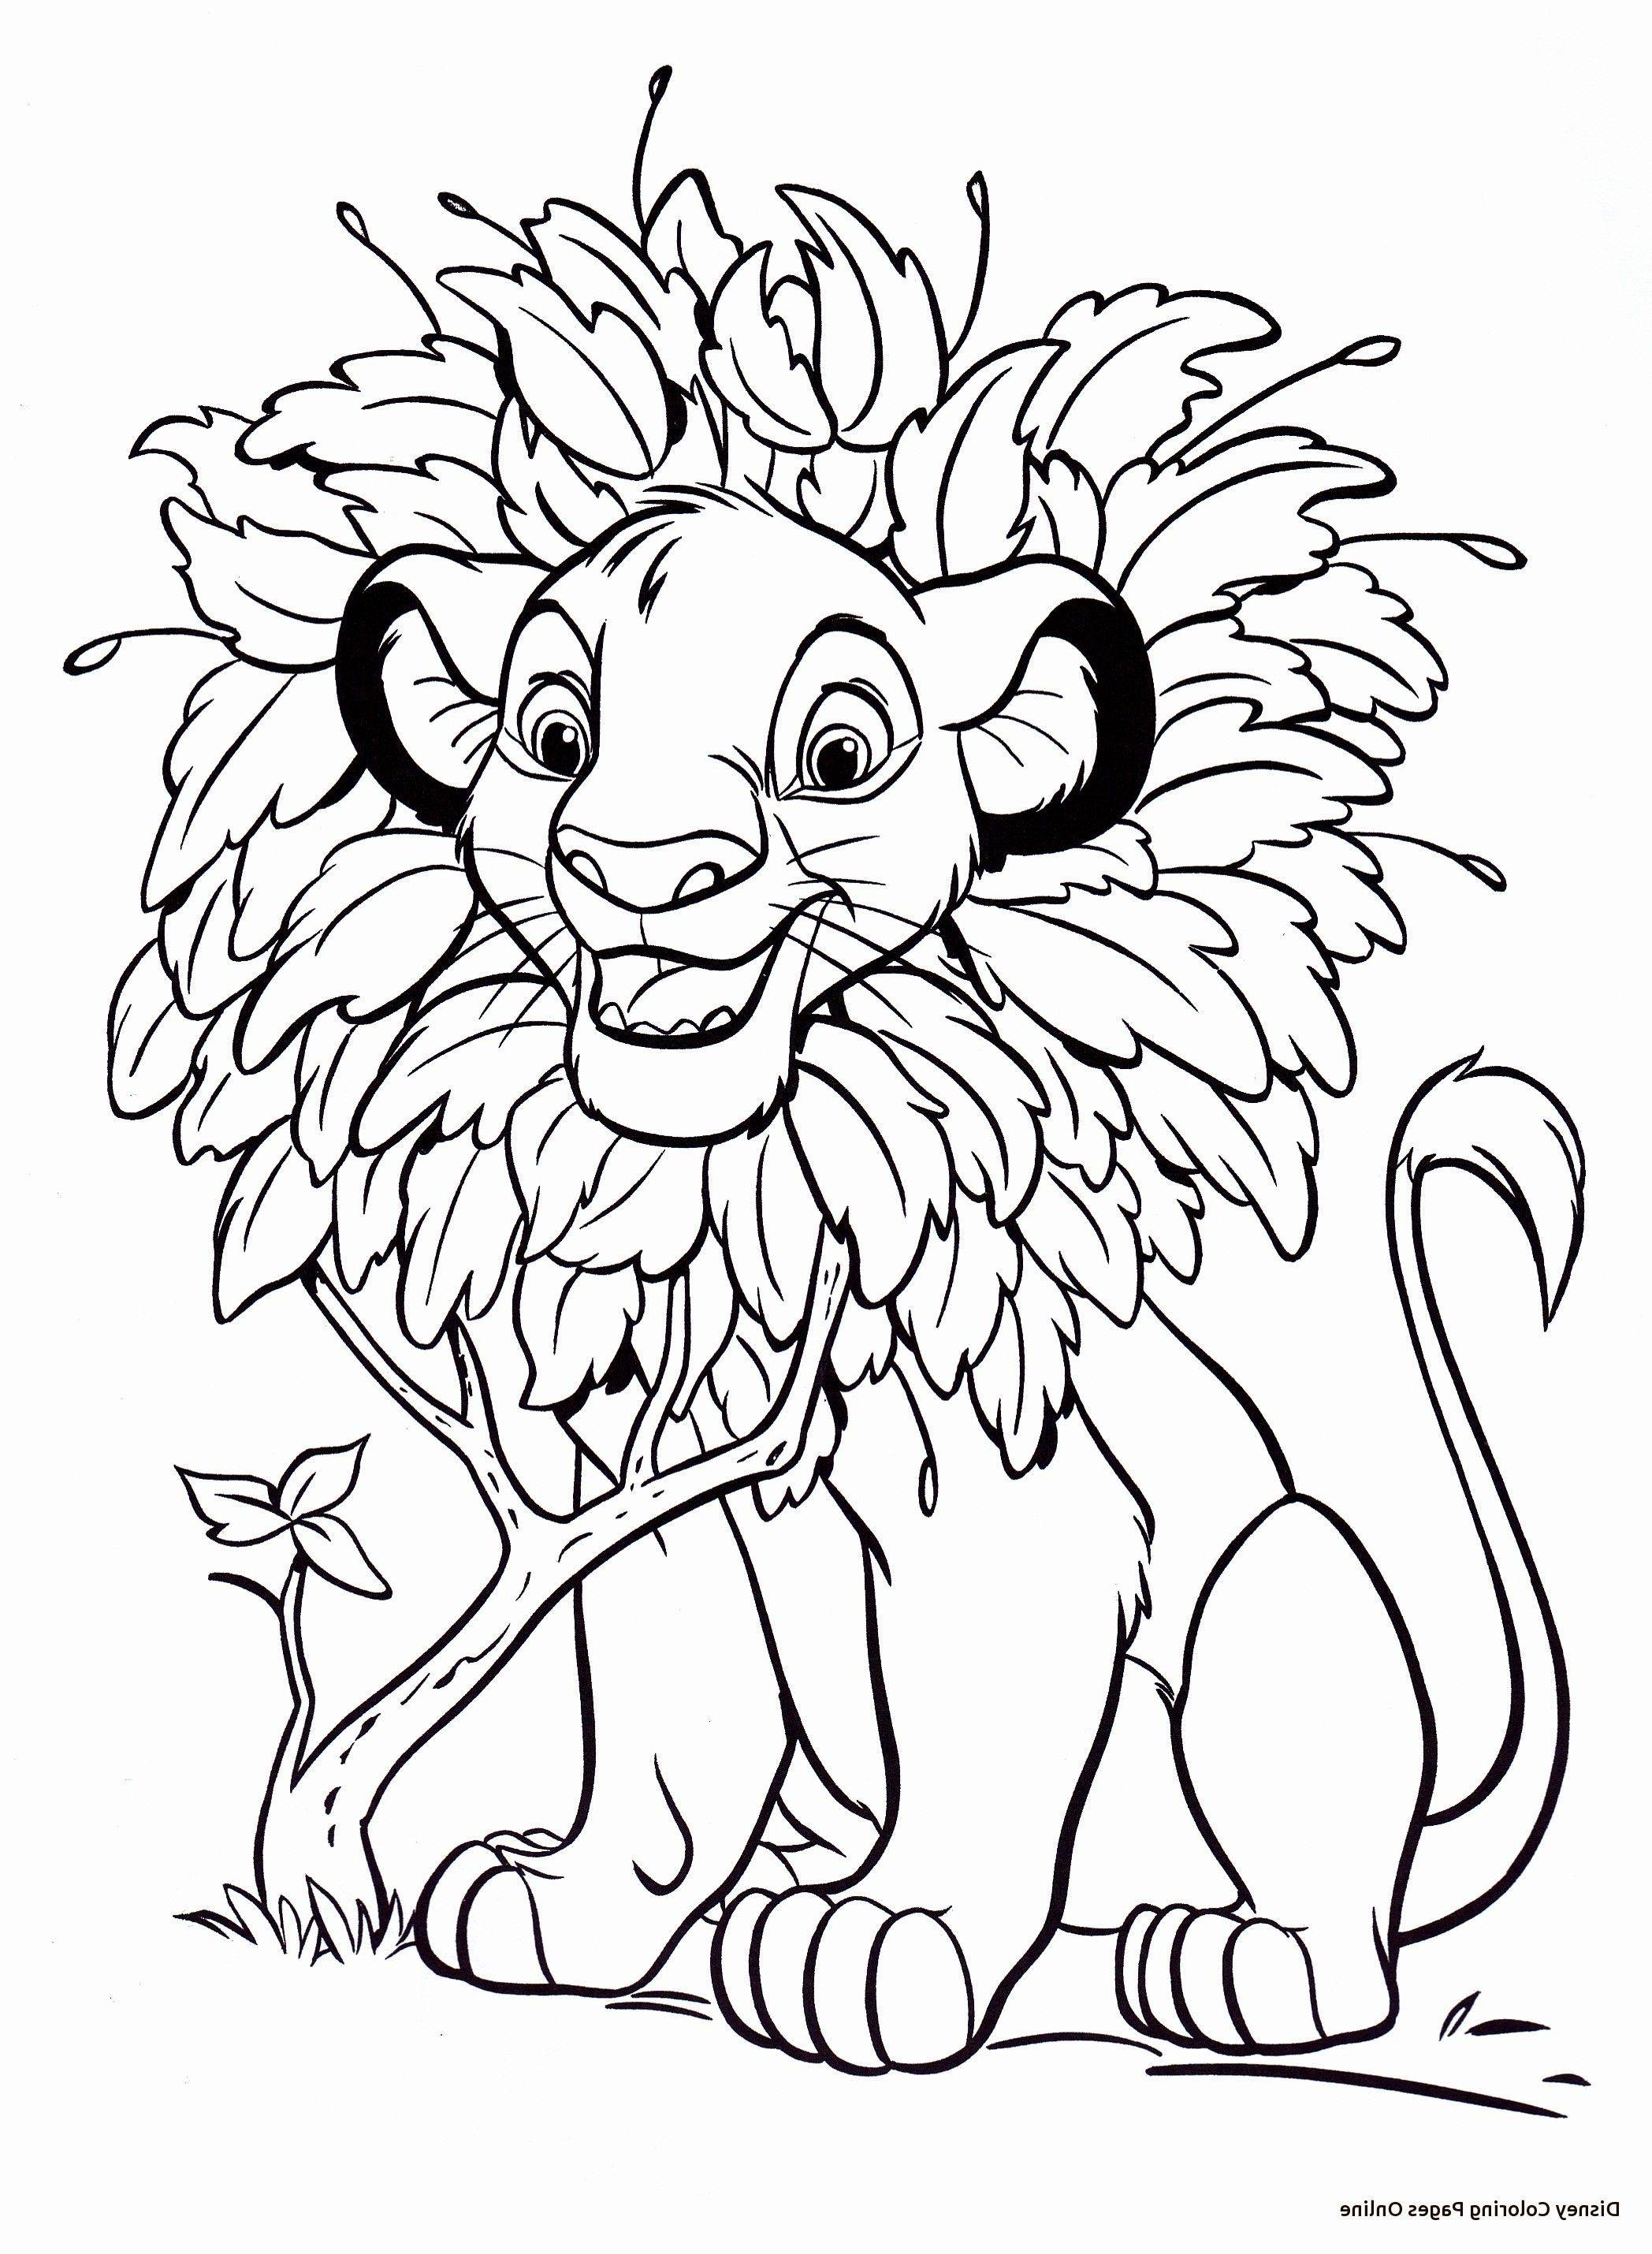 Disney Coloring Pages Online Free Disney Coloring Pages Disney Coloring Pages Tangled Coloring Pages